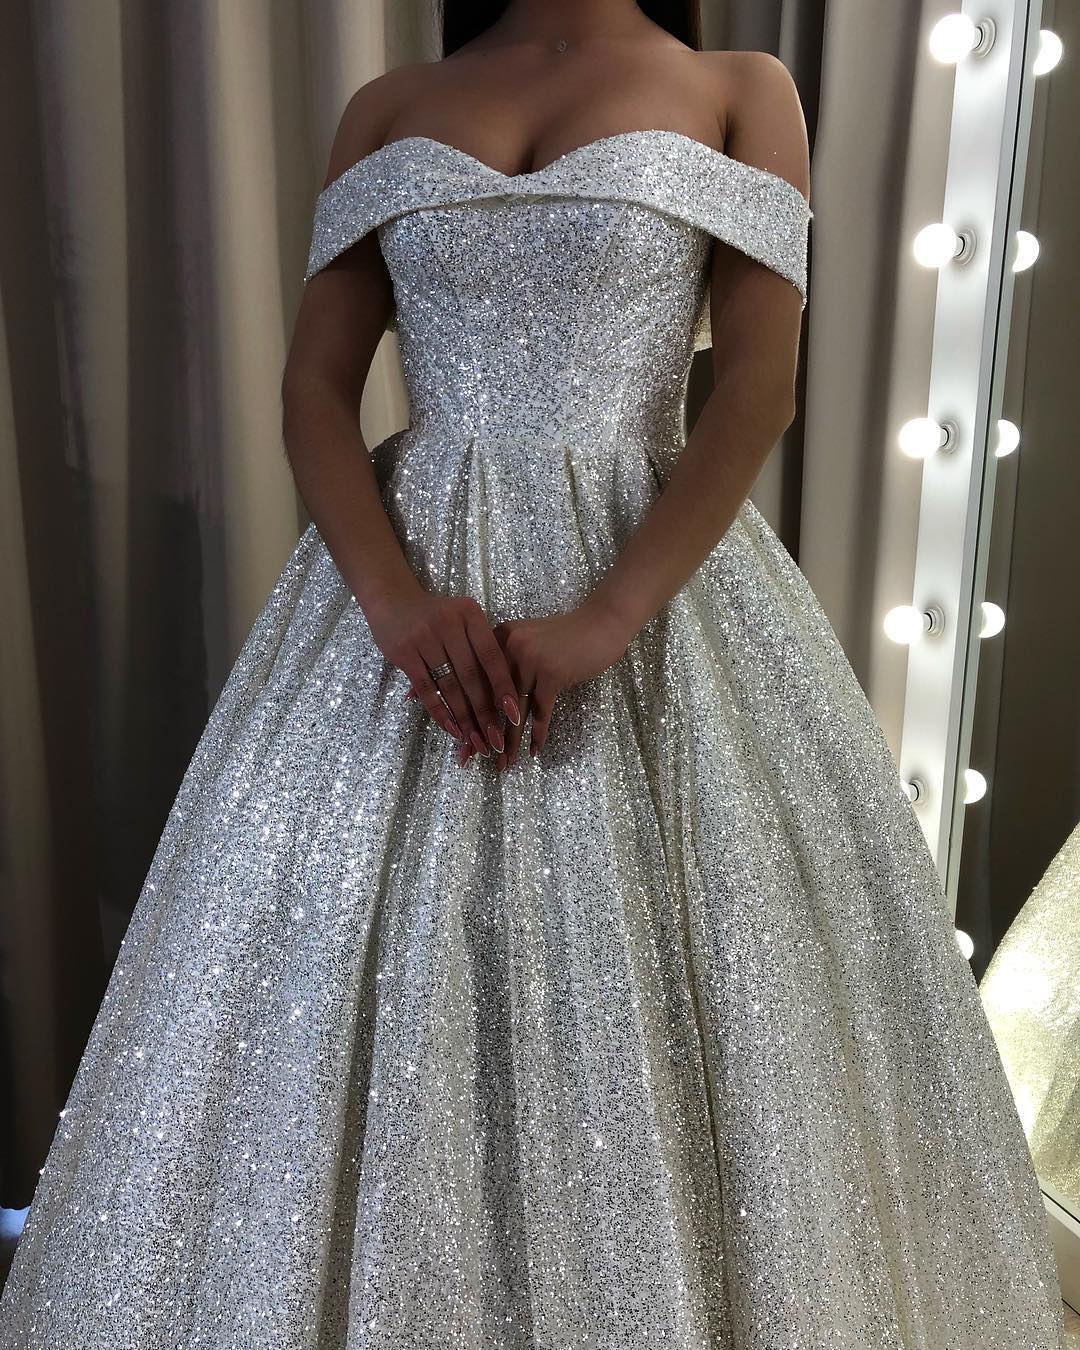 Glamorous Off-the-Shoulder Sequins Prom Dress | Long 2021 Evening Gowns On Sale_Prom Dresses_Prom & Evening_High Quality Wedding Dresses, Prom